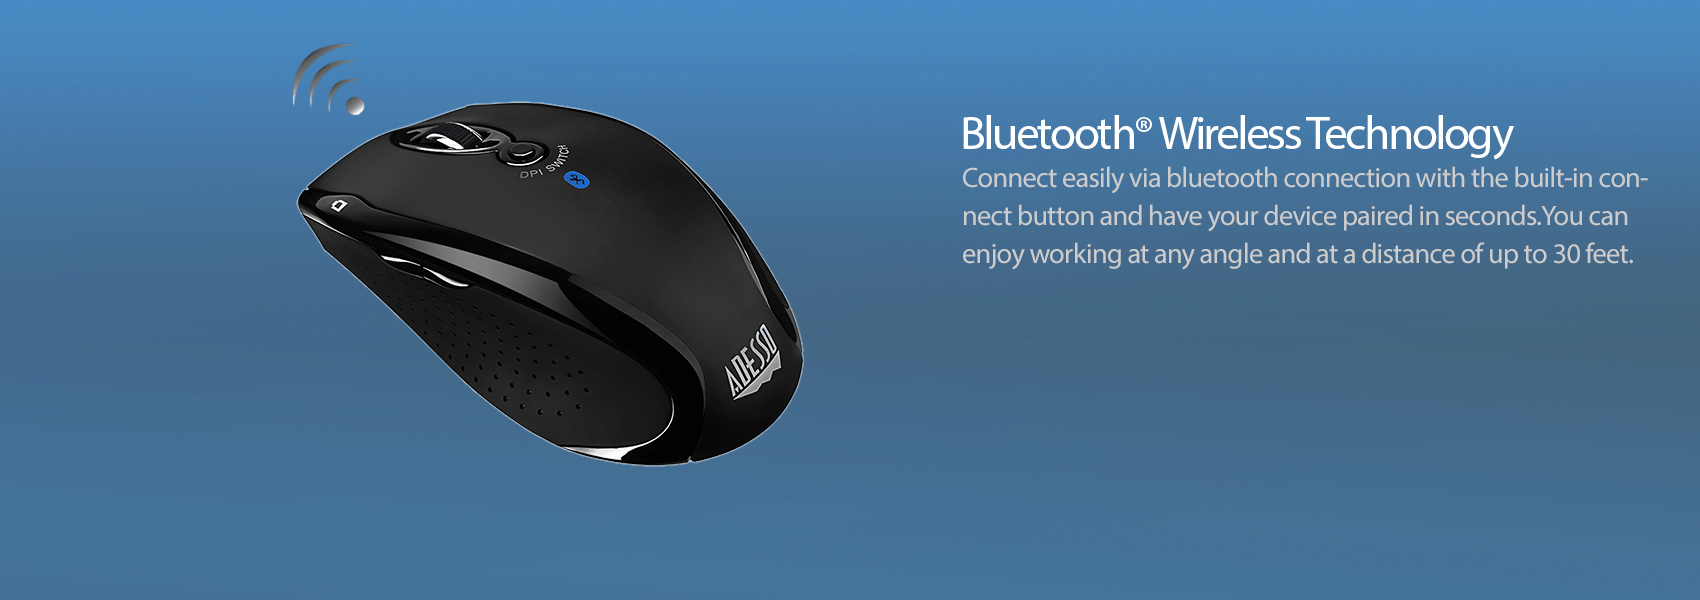 43fc8368537 Model Number: iMouse S200B Categories: Ergonomic Solutions, Home Office  Solutions, Mice, Mice